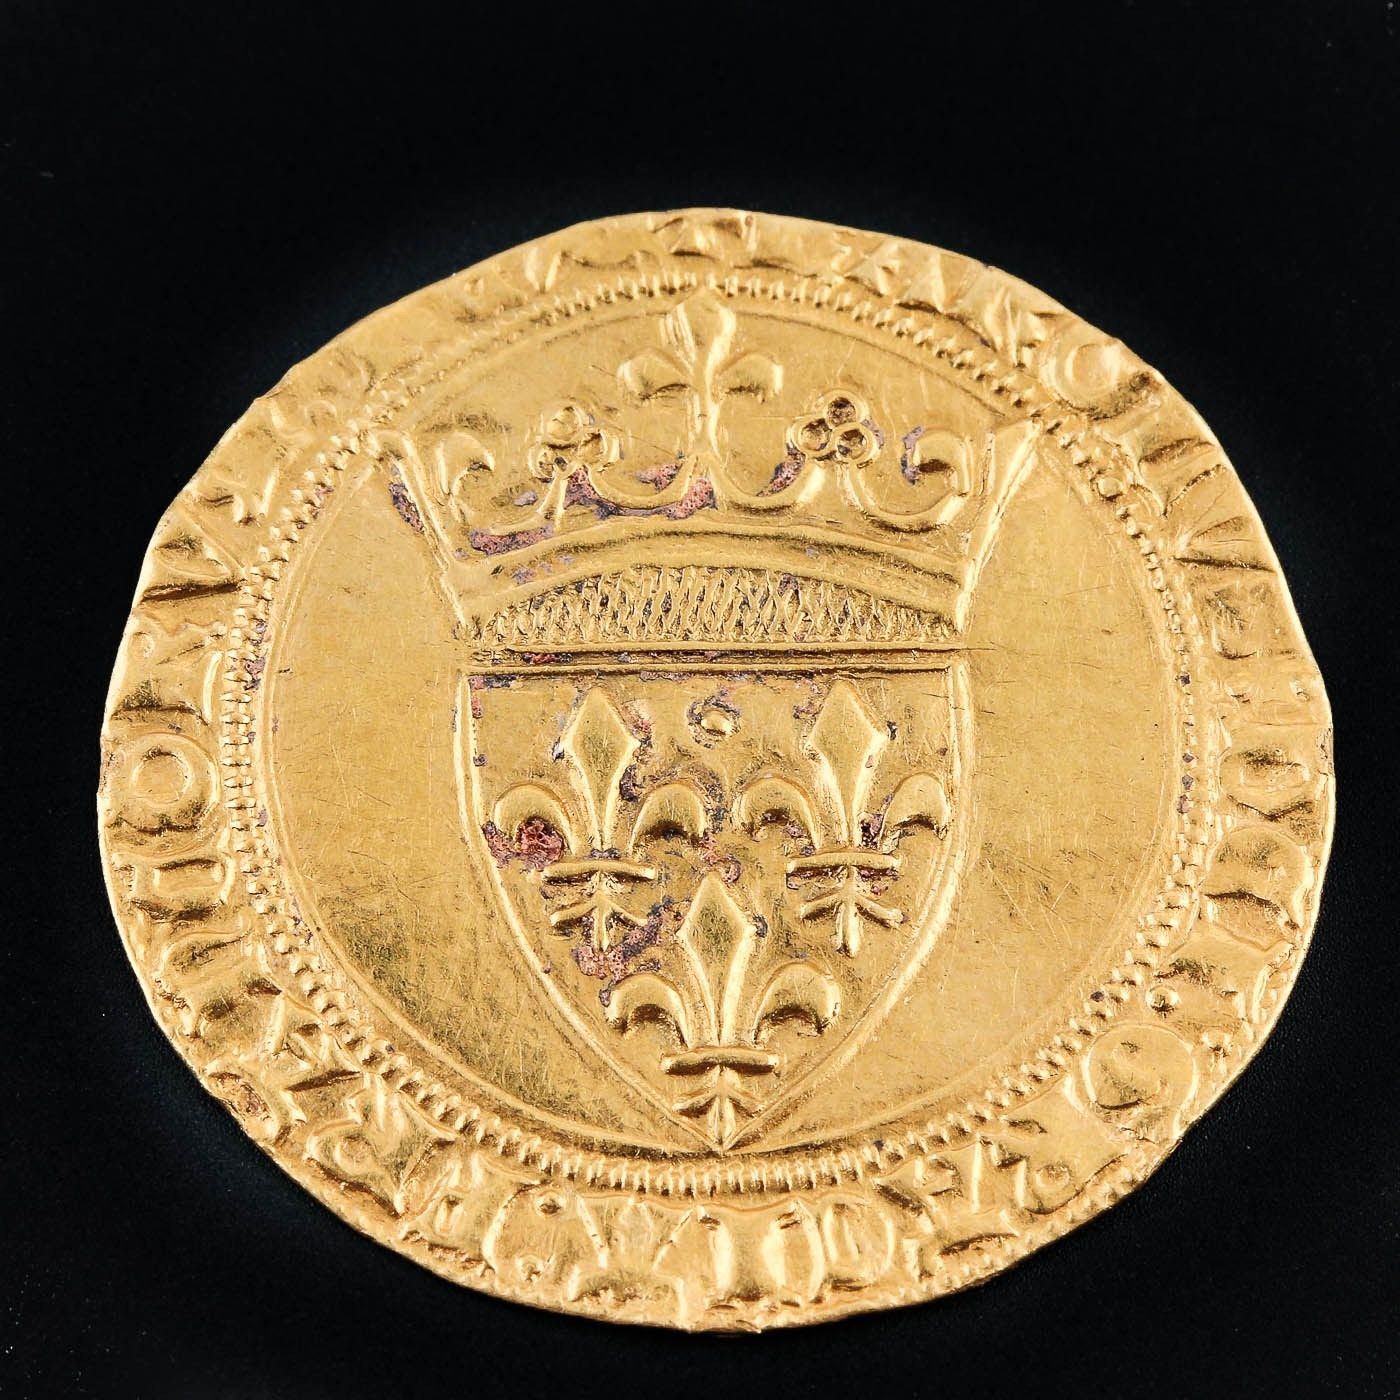 French Écu d'Or Gold Coin of Charles VI, ca. 1389